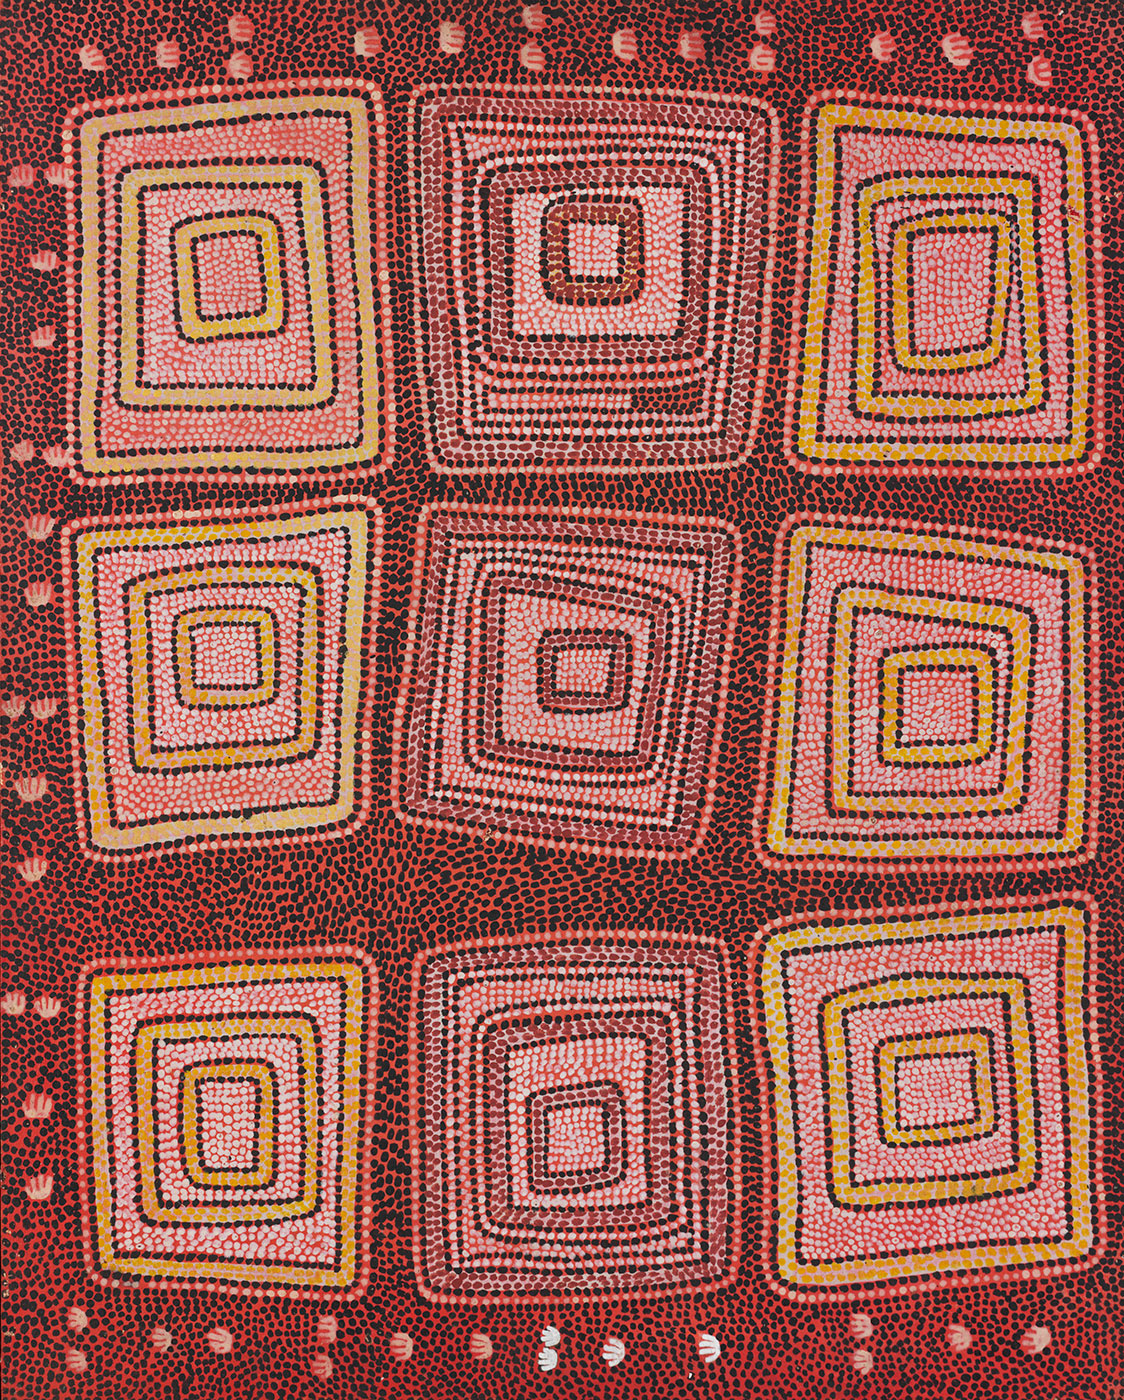 Possum Men of Yirtjurunya (Yiitjurunya) 1974 by Anatjari (Yanyatjarri) Tjakamarra. - click to view larger image